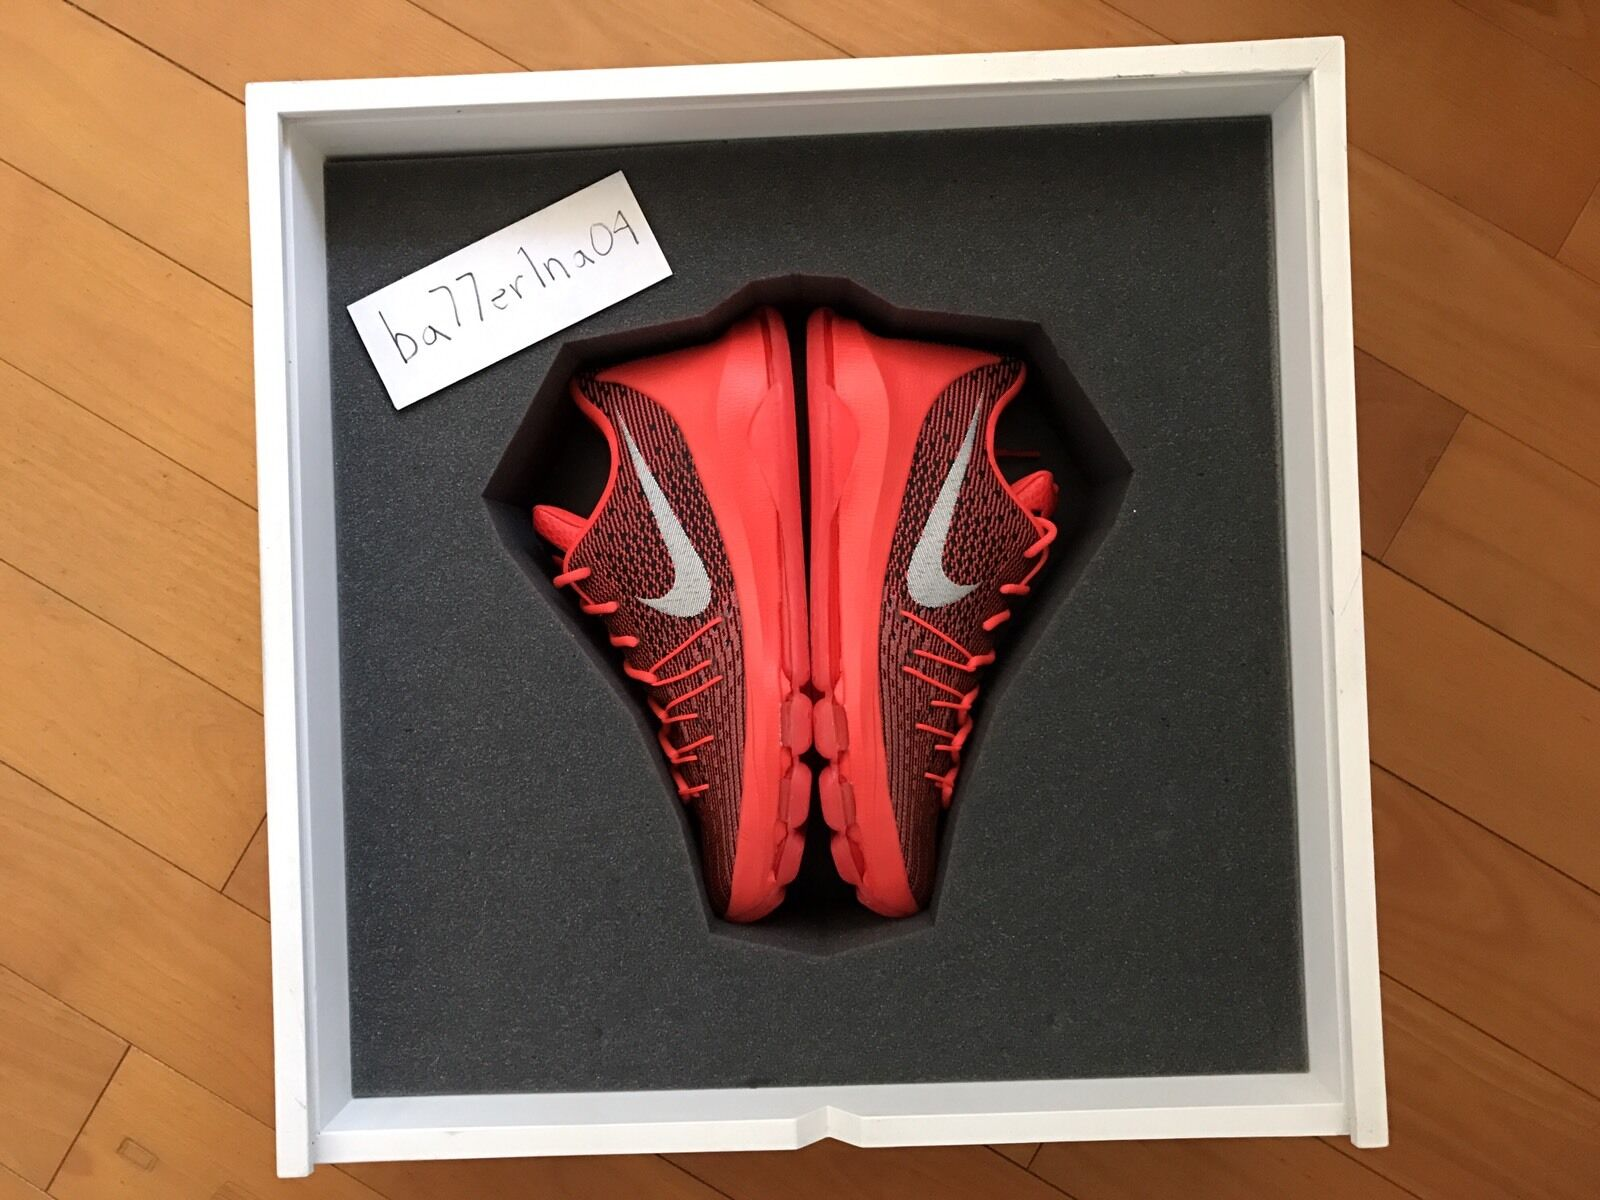 Nike Zoom KD 8 Rare Limited Box Collector's Item Display 1 Of 50 DS Size 9 PE